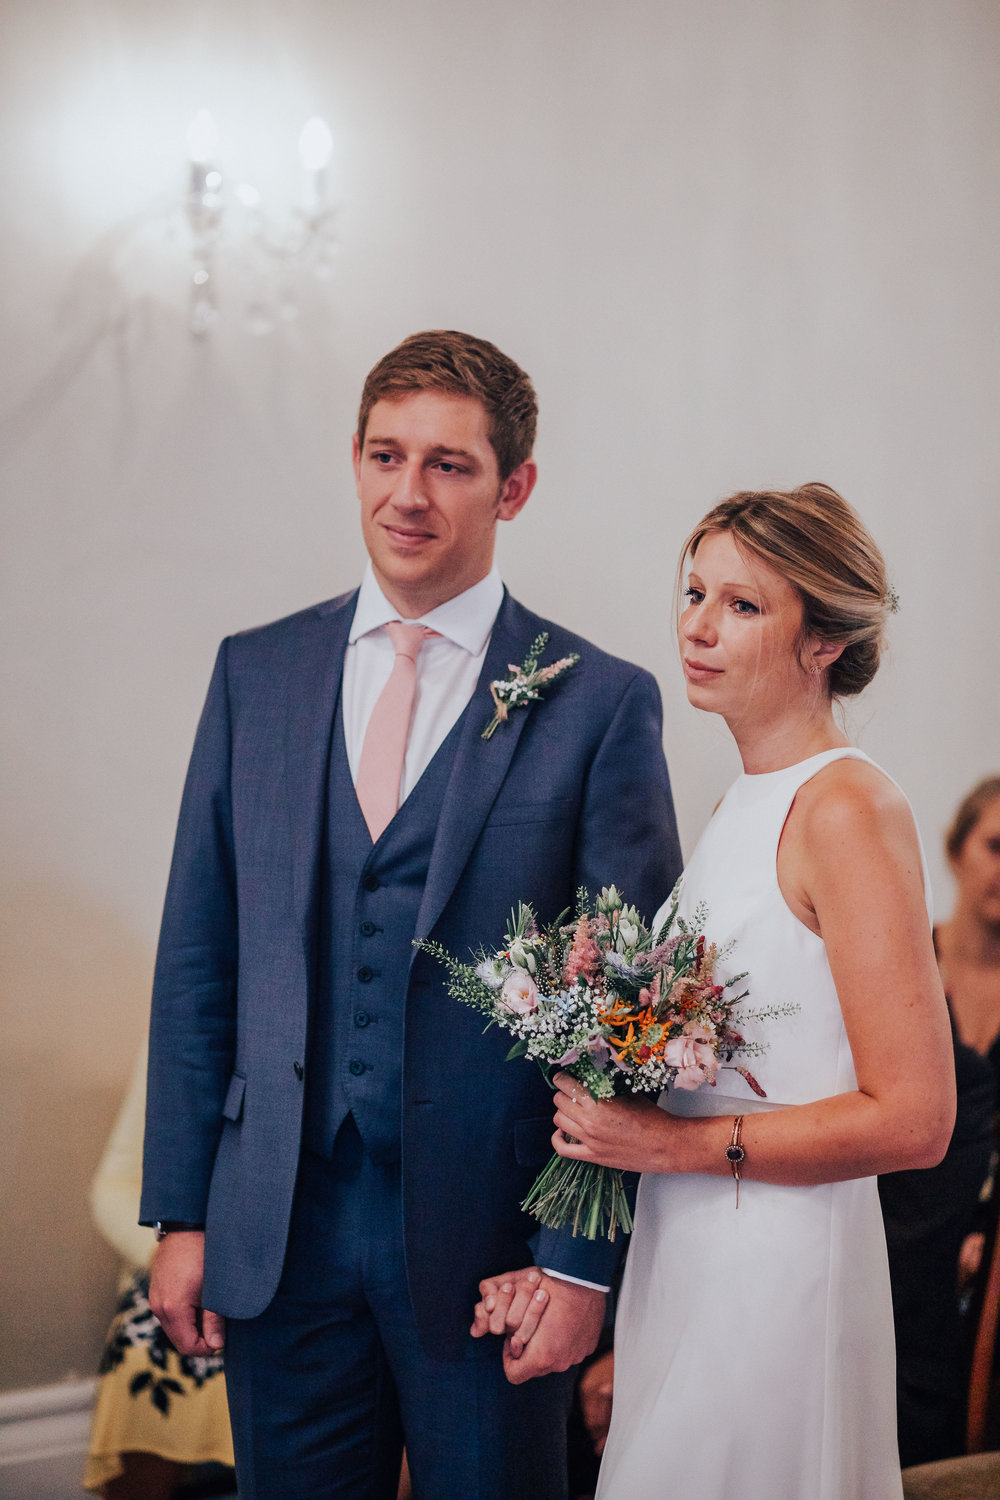 PJ_PHILLIPS_PHOTOGRAPHY_YORKSHIRE_WEDDING_PHOTOGRAPHER_HENRY_SOPHIE_SPORTSMANS_ARMS_PATELEY_BRIDGE_11.jpg